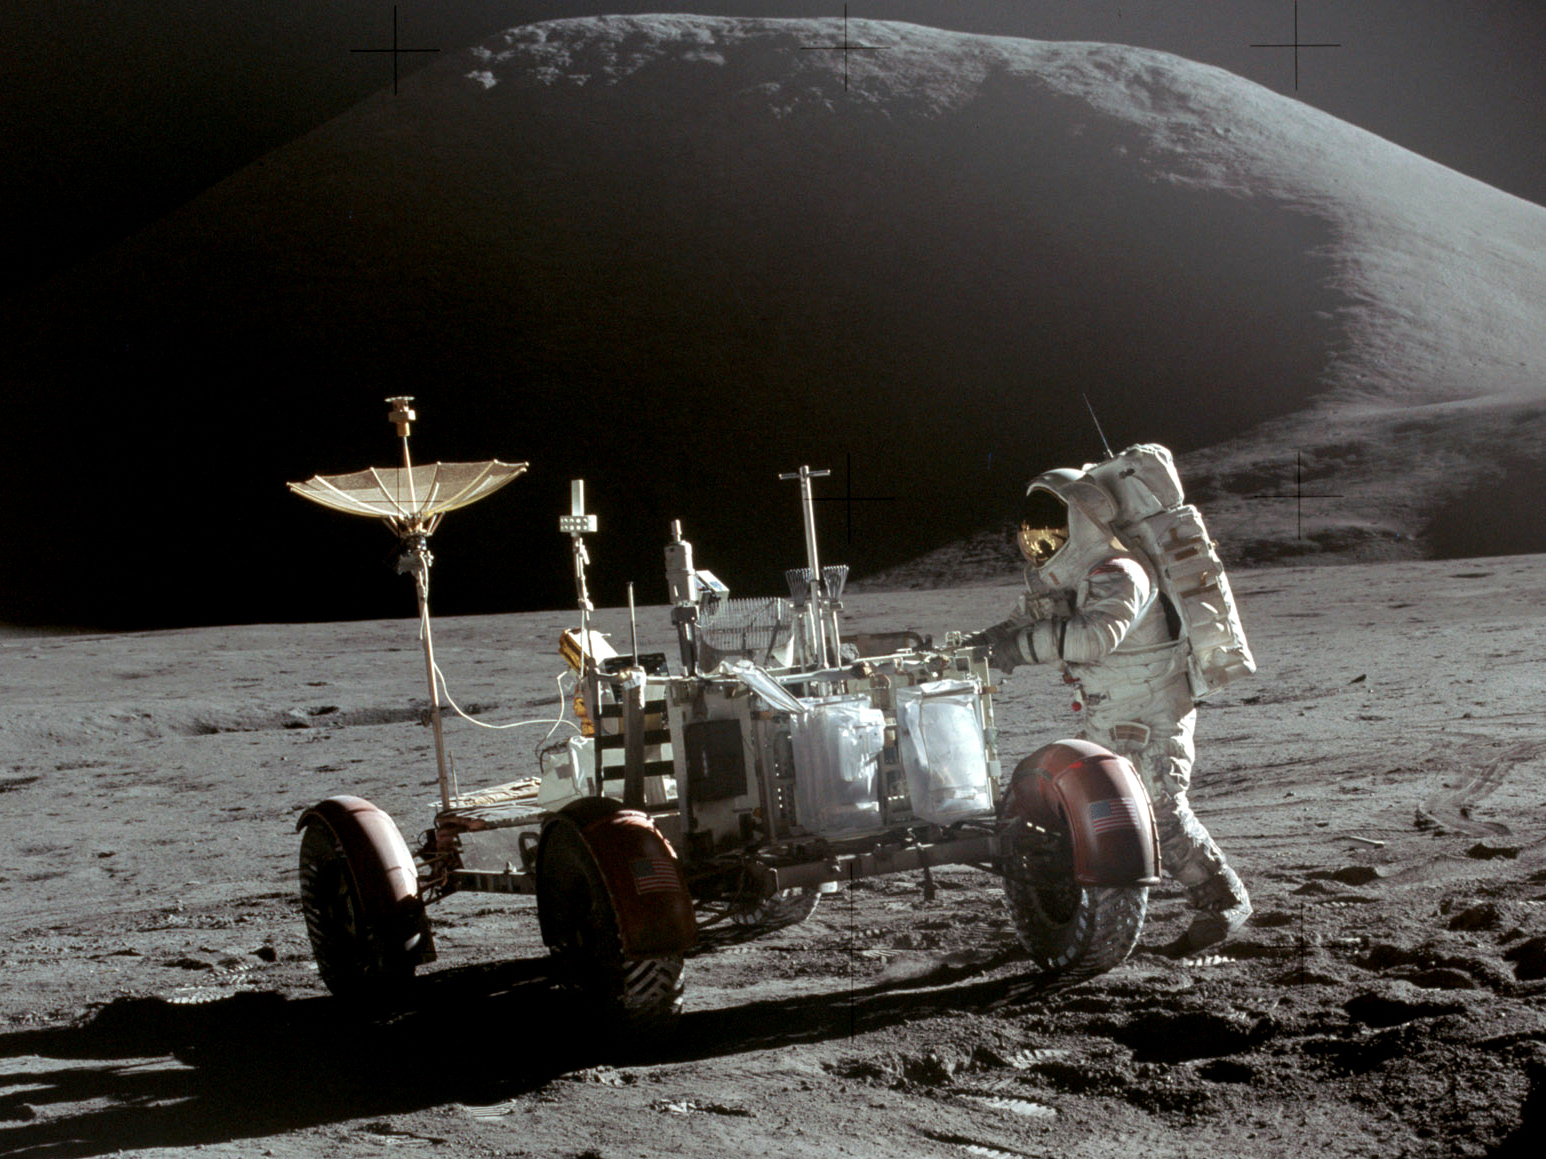 Apollo 15 Lunar Rover and Irwin North Korea Is Planning To Invade Moon And Claim It For Themselves